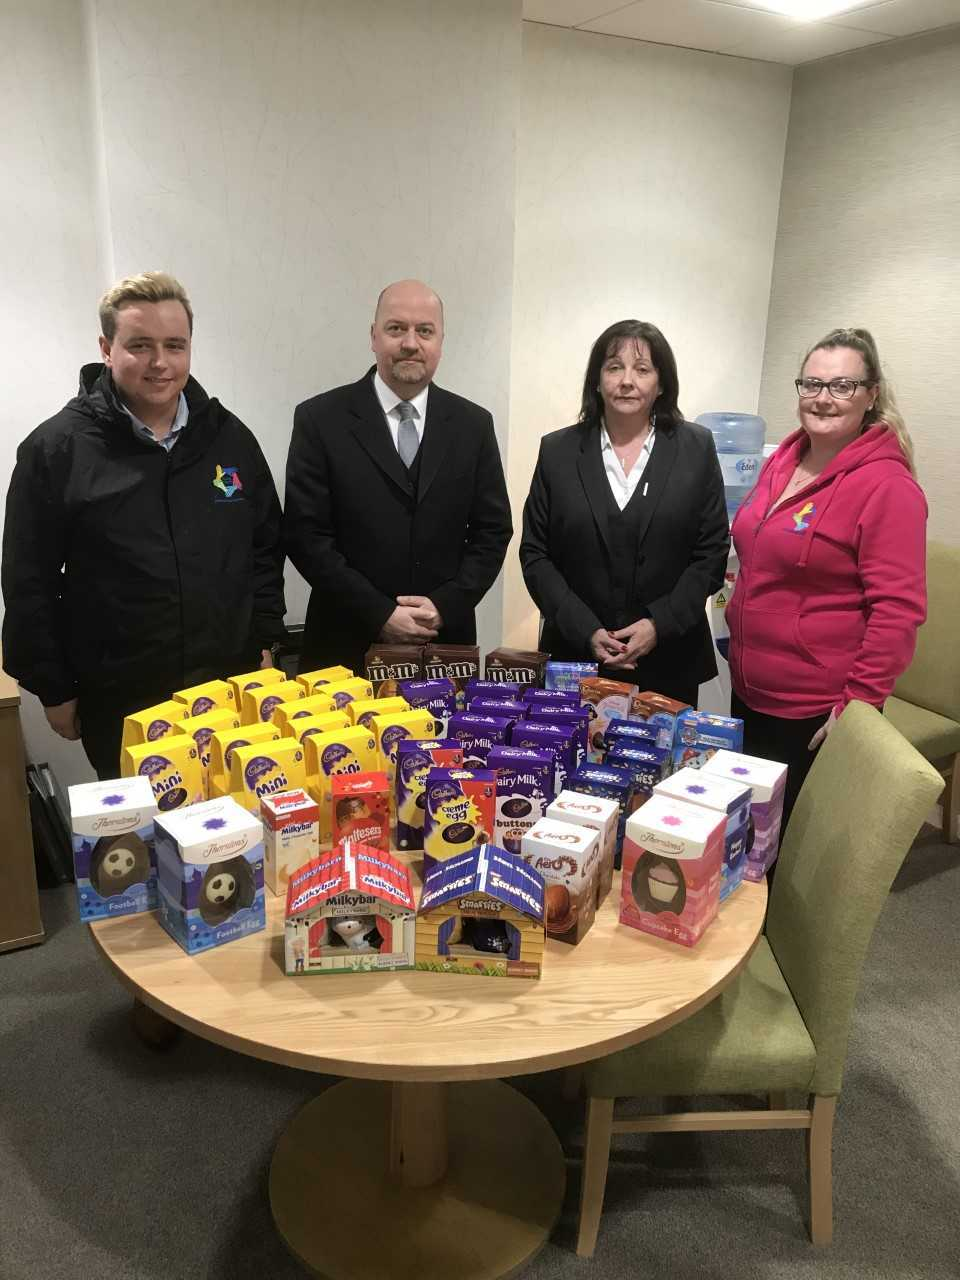 The Easter eggs were presented to members of Helensburgh and Lomond Carers